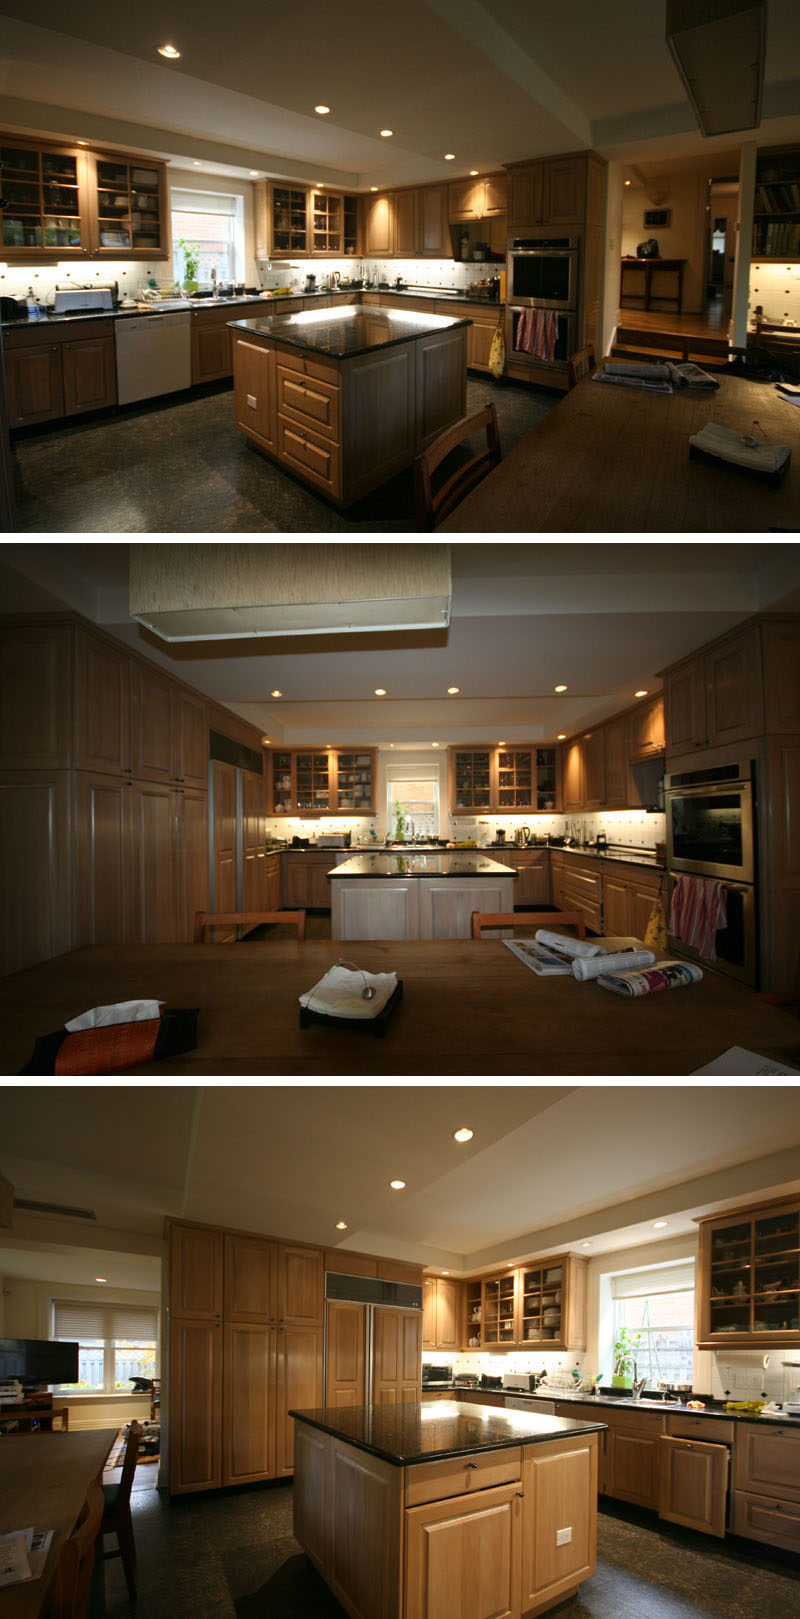 The Before Photos - In the late 80's, this kitchen was relocated into the garage, and as a result, the kitchen has eight foot concrete ceilings, and is quite dark.